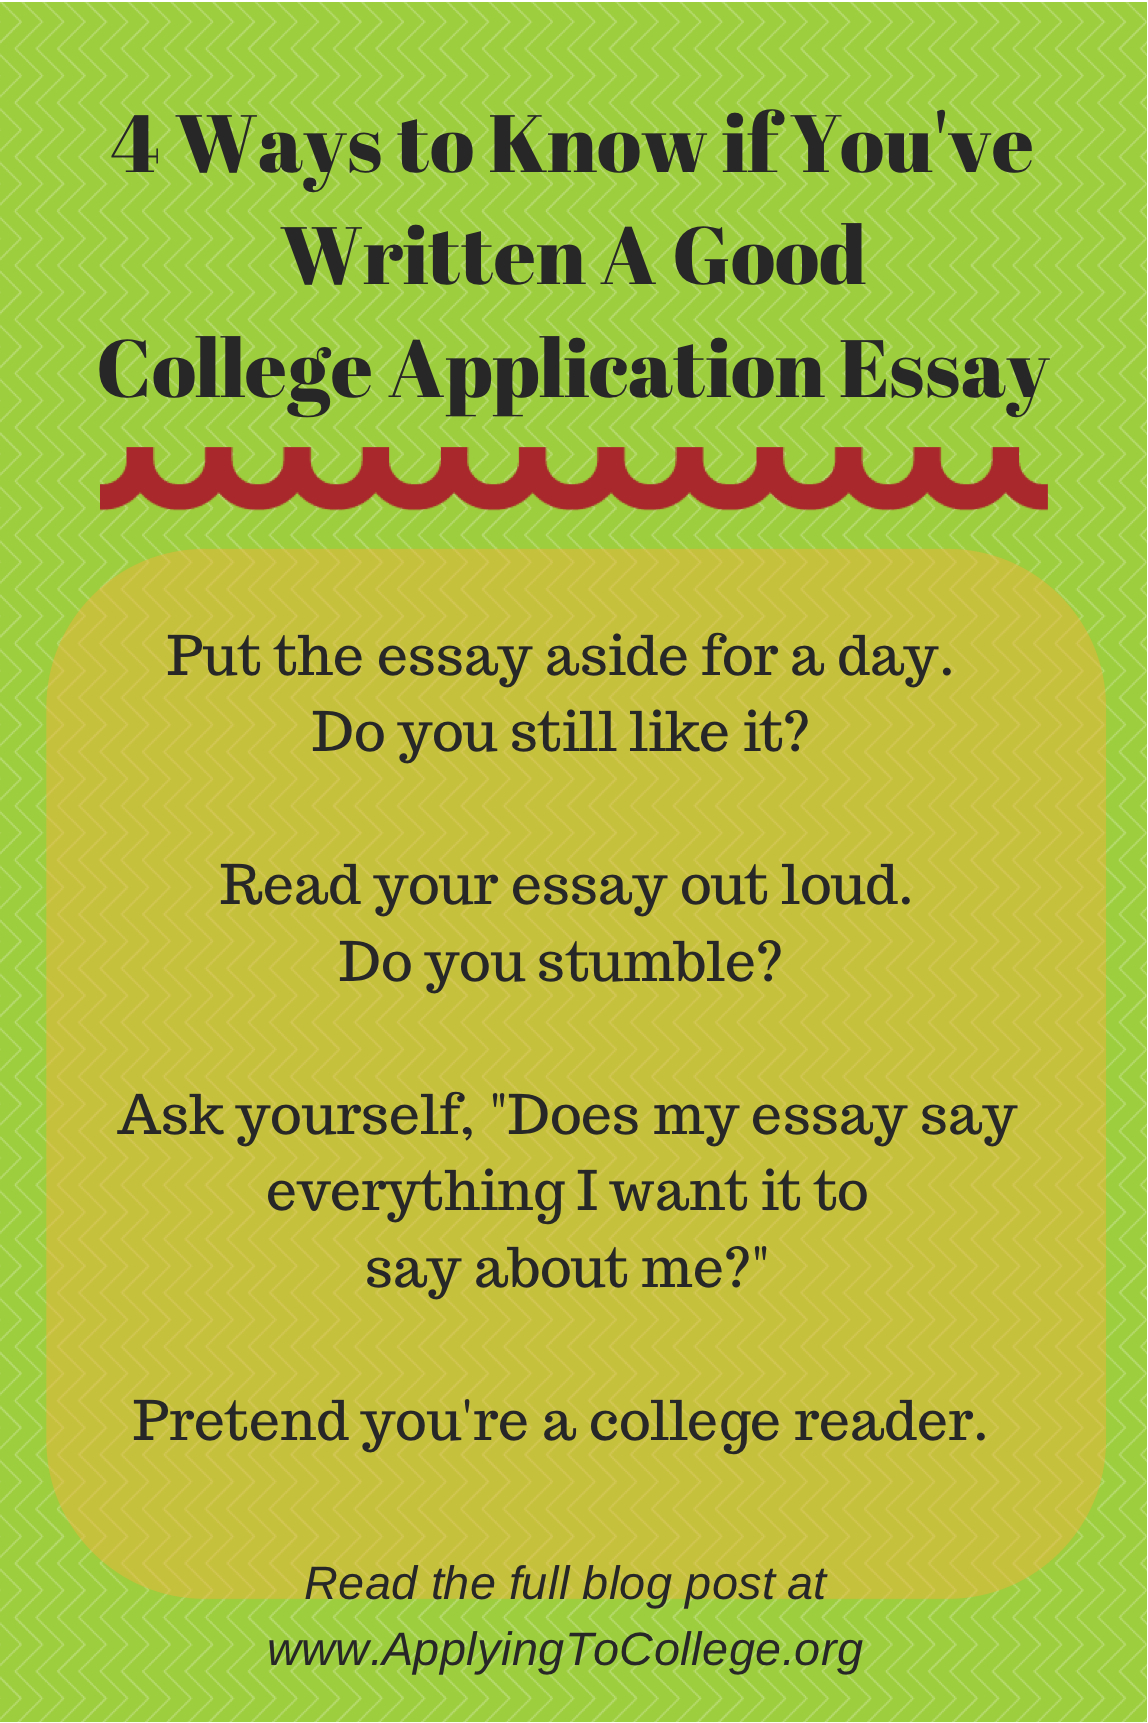 Writing a good essay for college